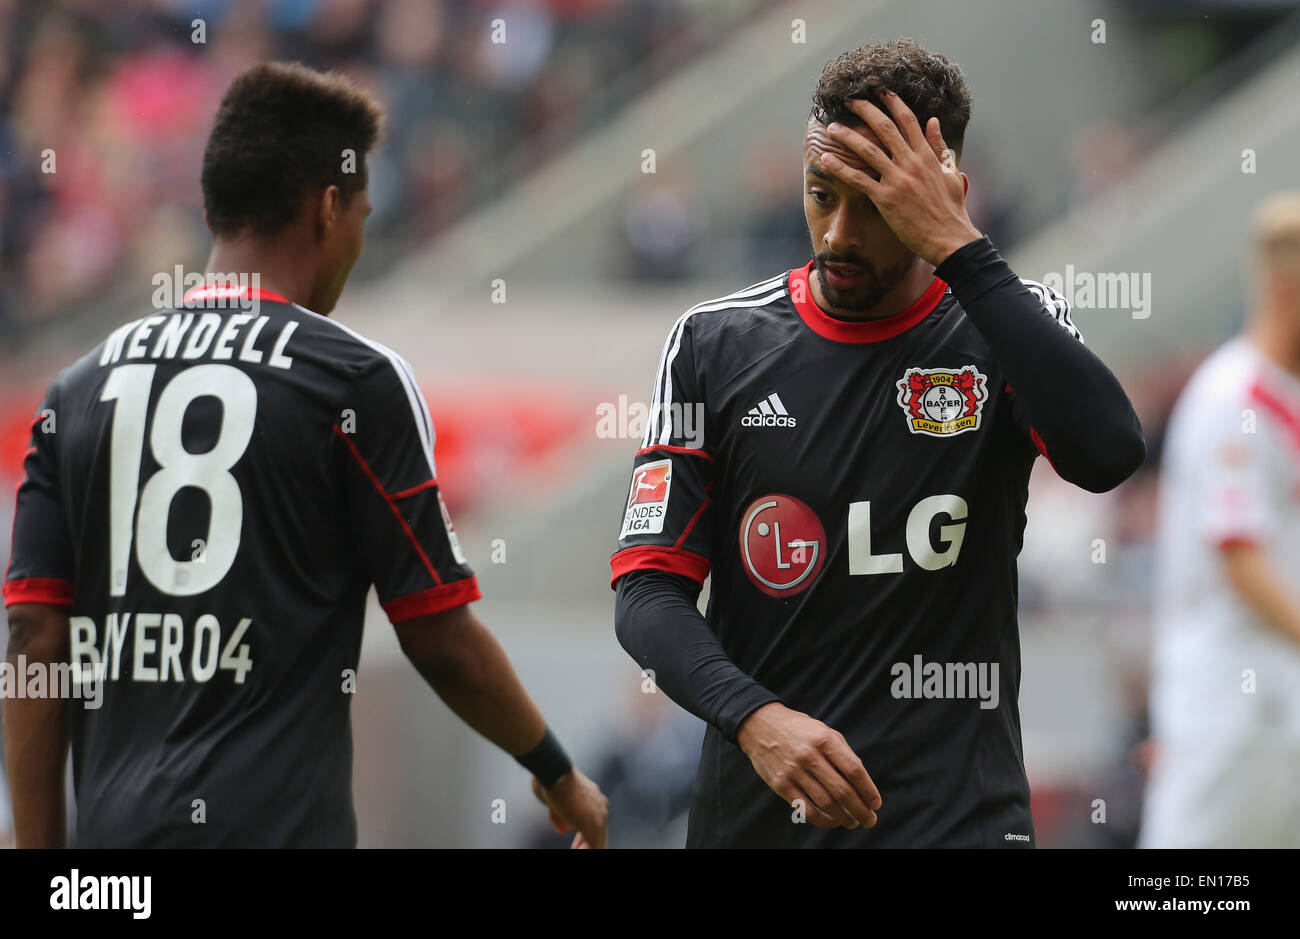 Cologne, Germany, 25Apr 2015. Bundesliga, 1. FC Koeln vs Bayer Leverkusen. Karim Bellarabi (Leverkusen, R) touches - Stock Image